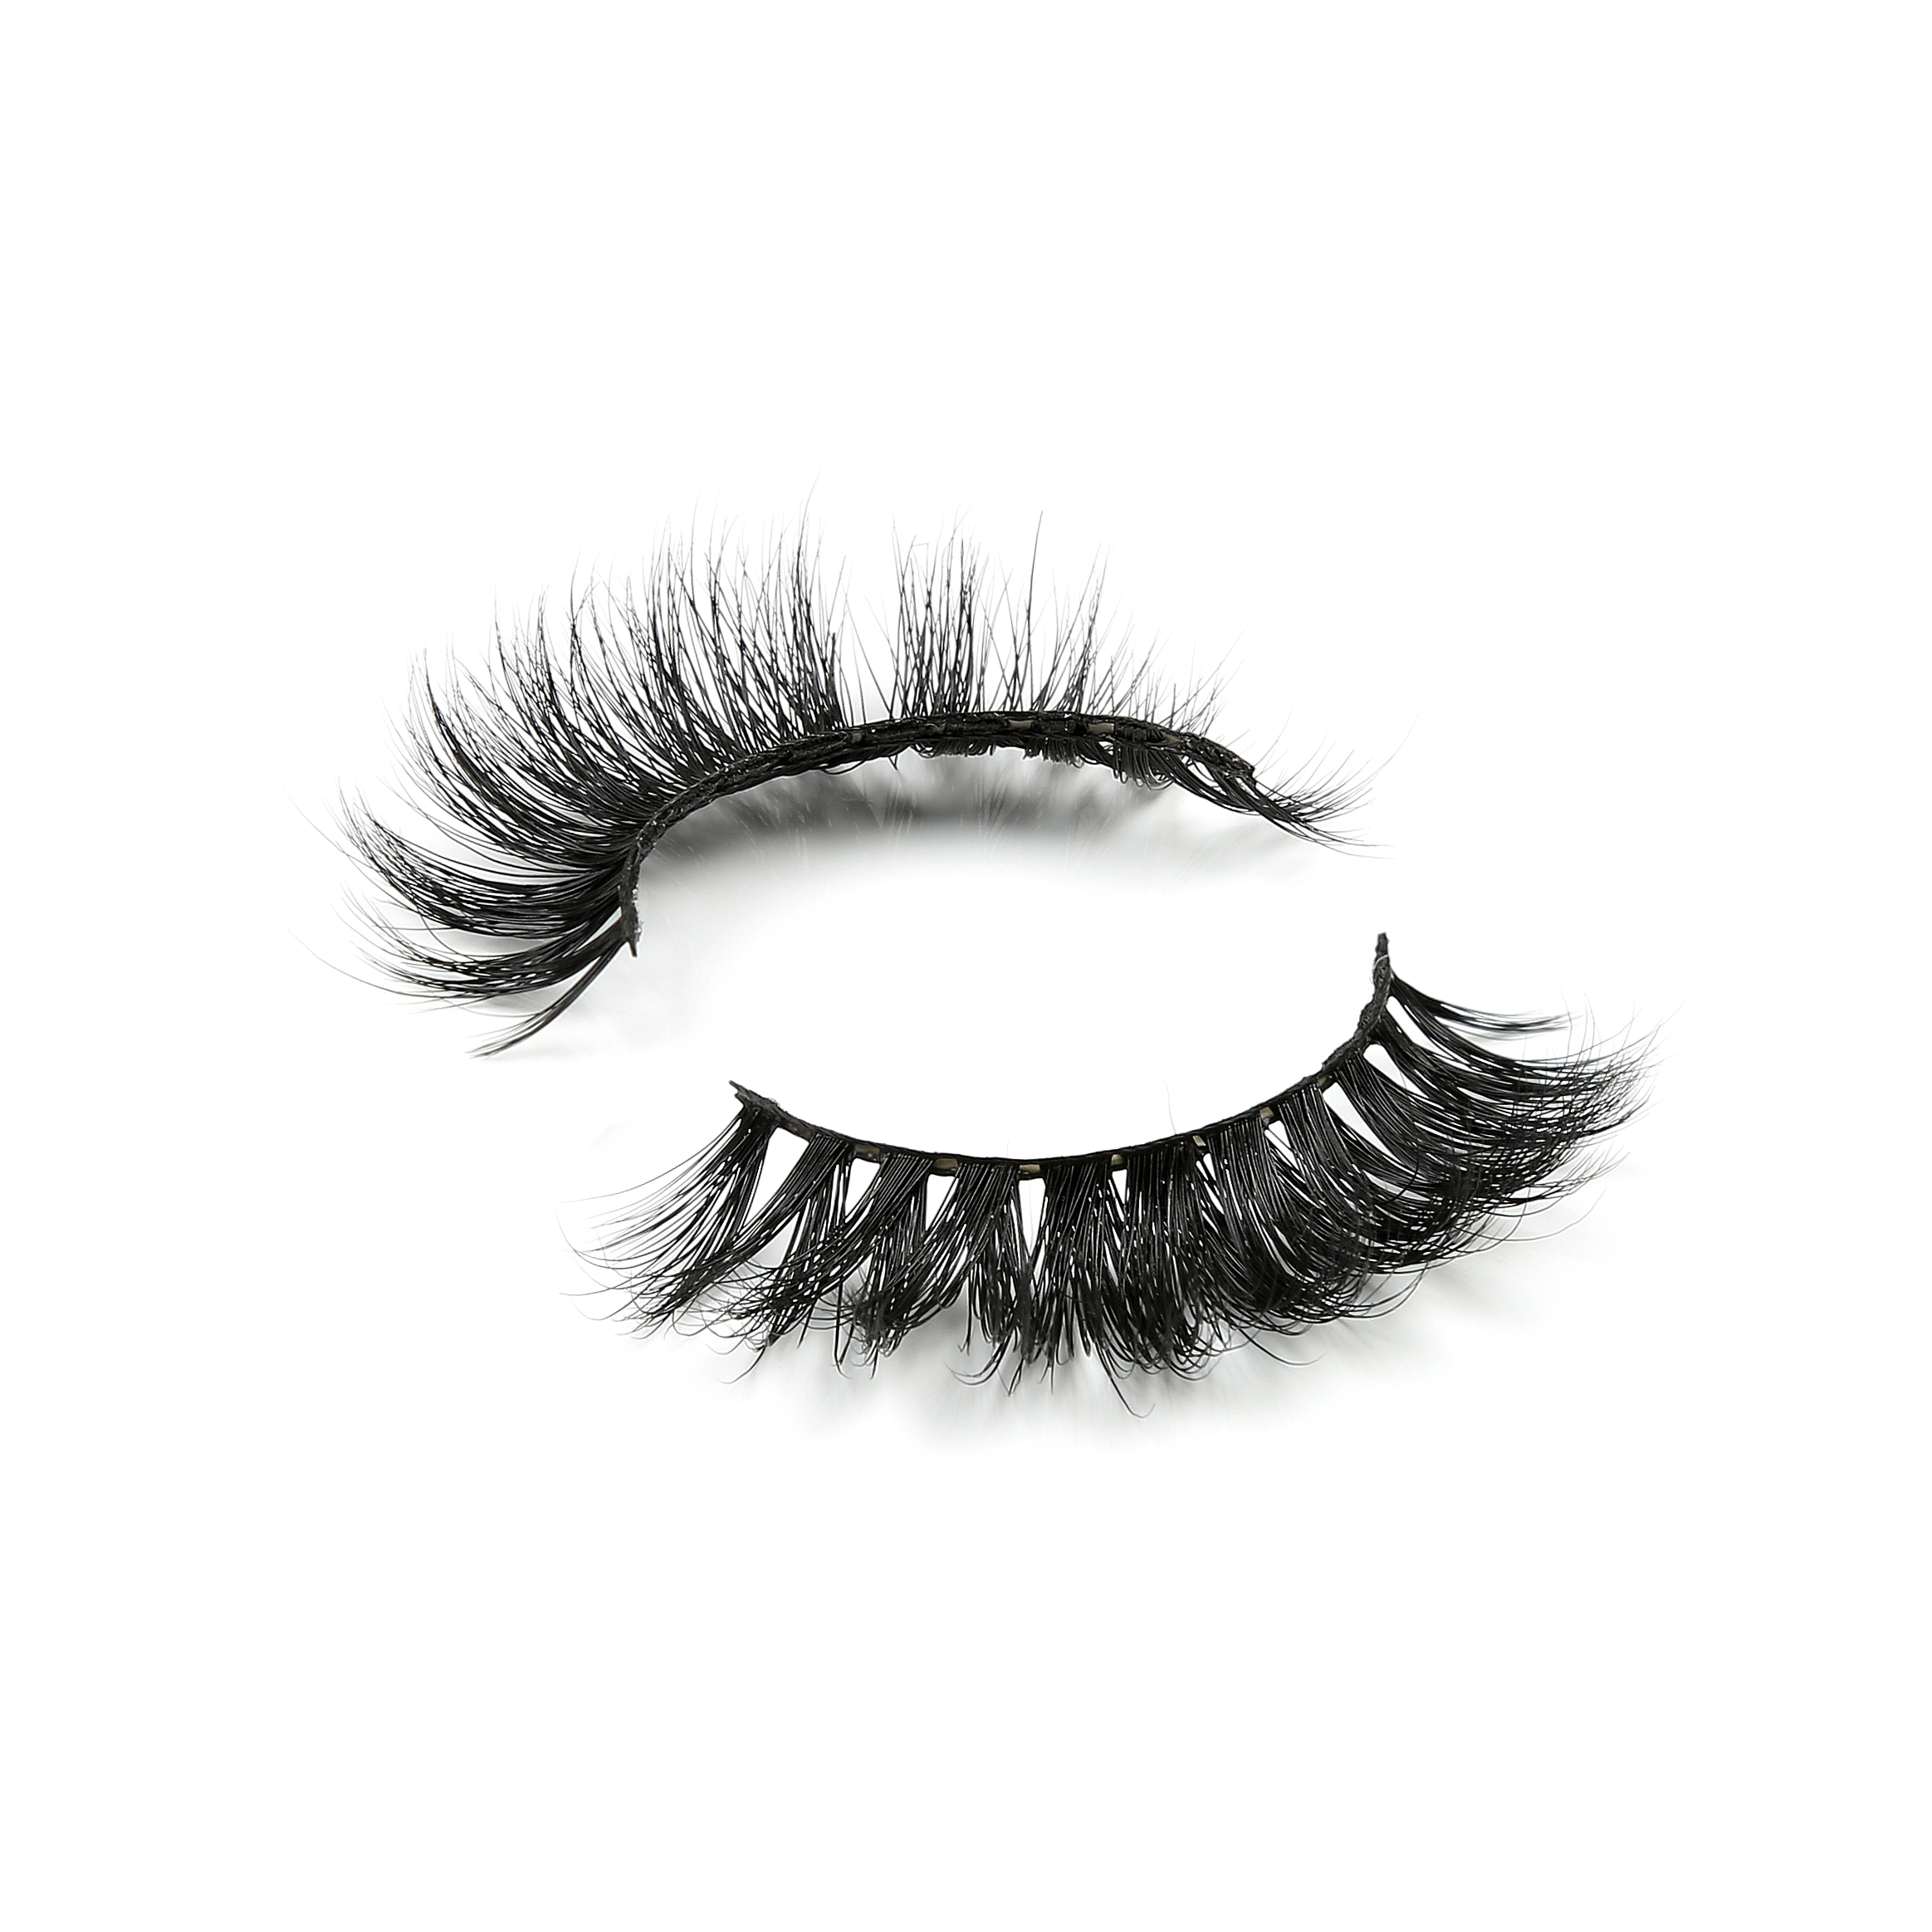 highest quality pure handmade reusable cruelty free 100% mink fur eyelashes made in indonesia